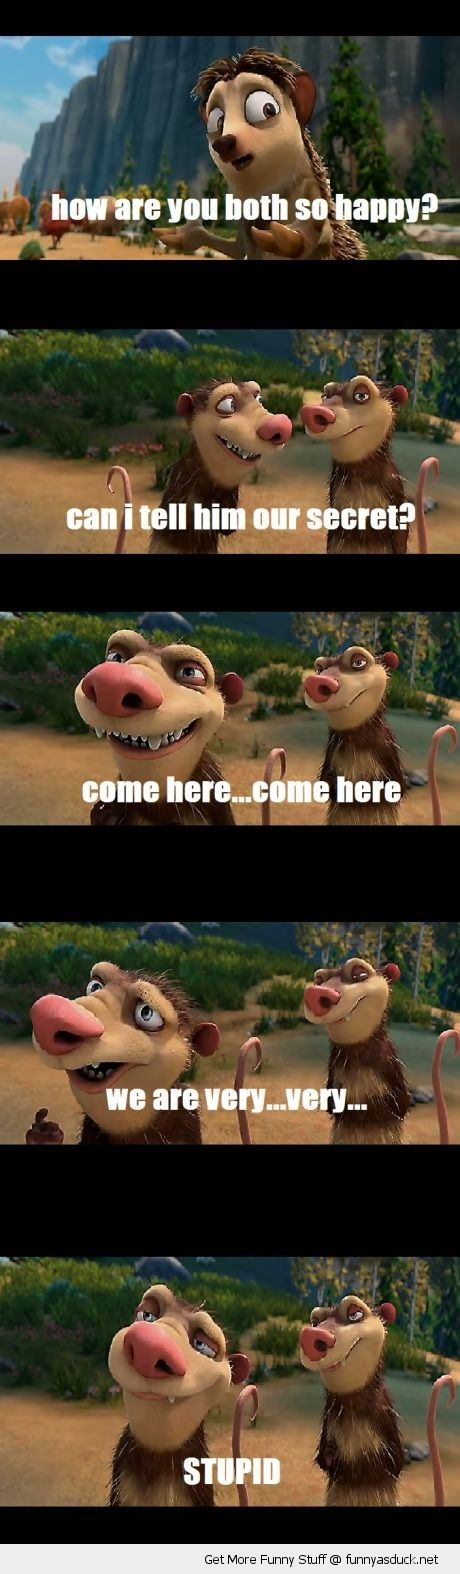 ice age movie scene rats rodents animals stupid secret happiness funny pics pictures pic picture image photo images photos lol